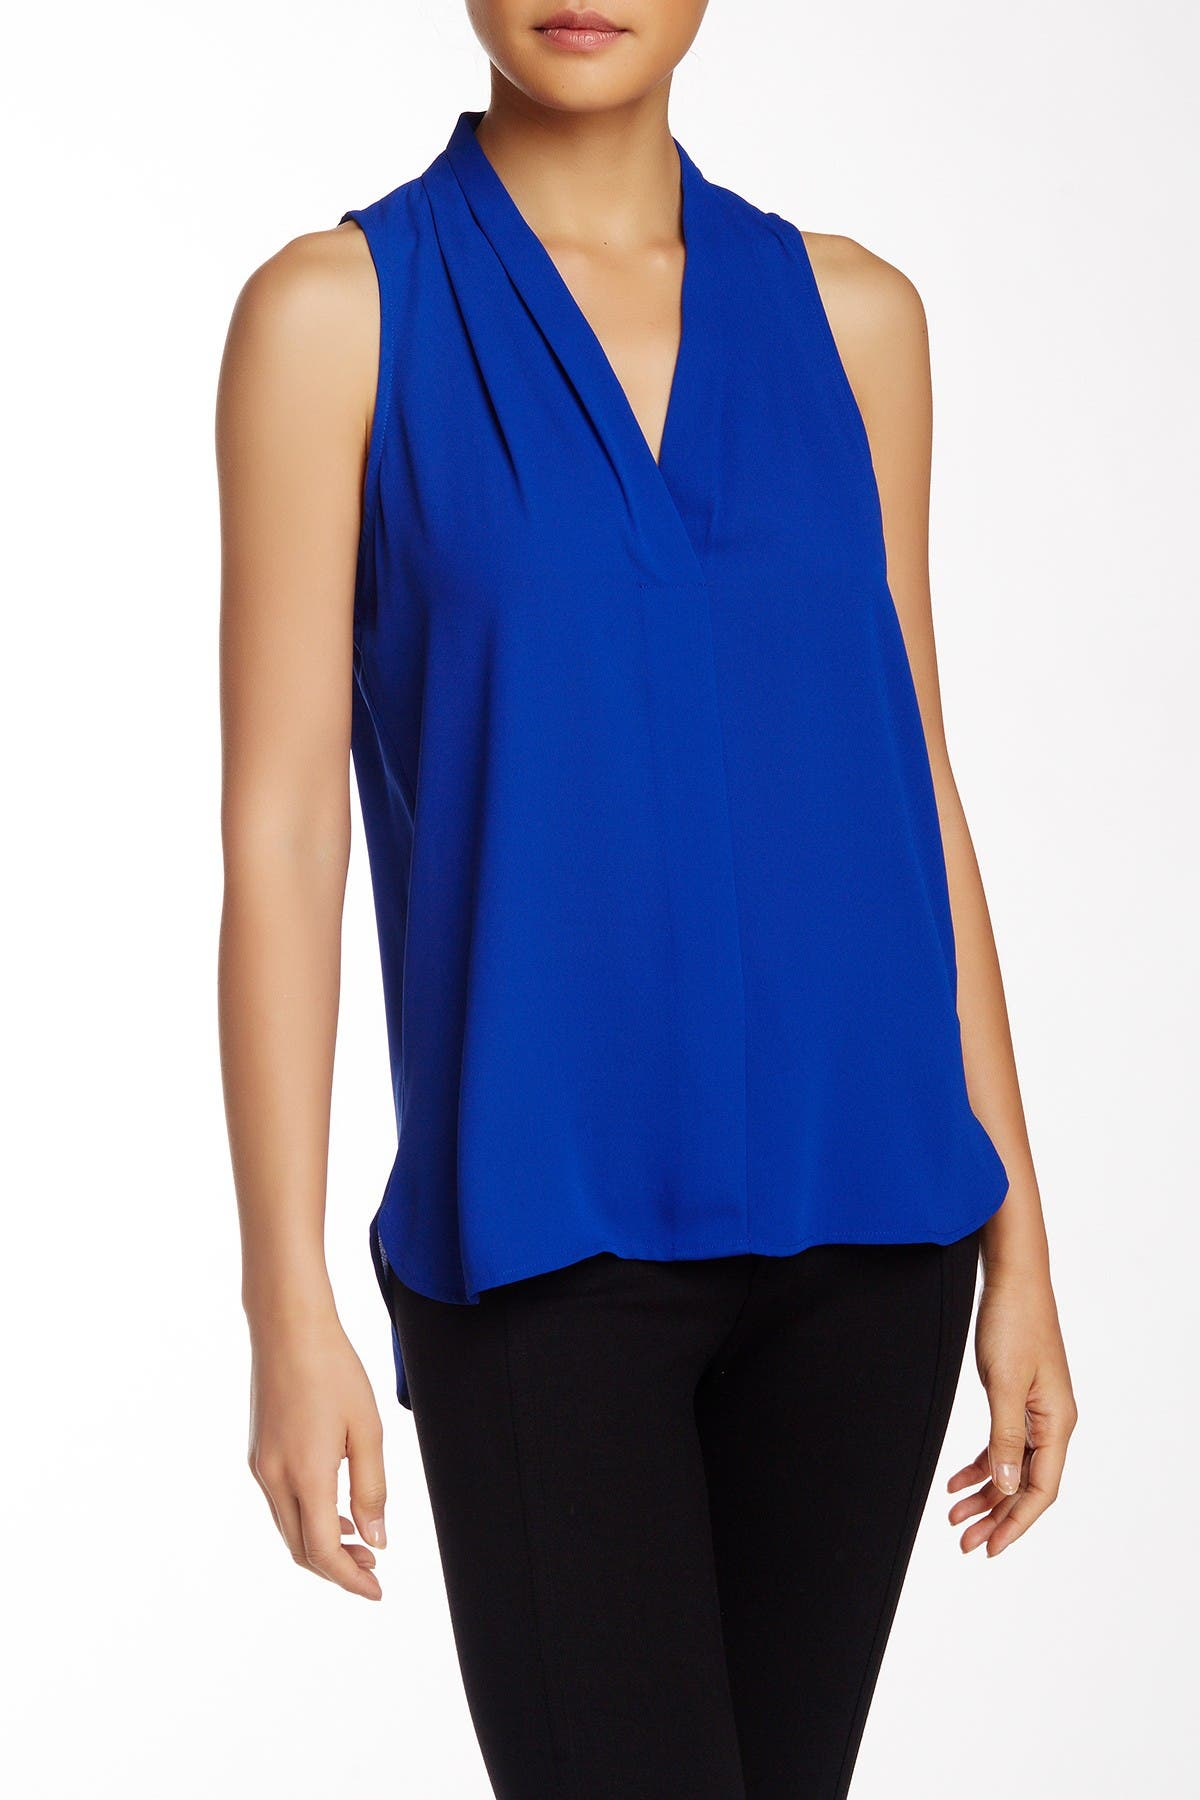 Image of Vince Camuto Pleated V-Neck High/Low Tank Top